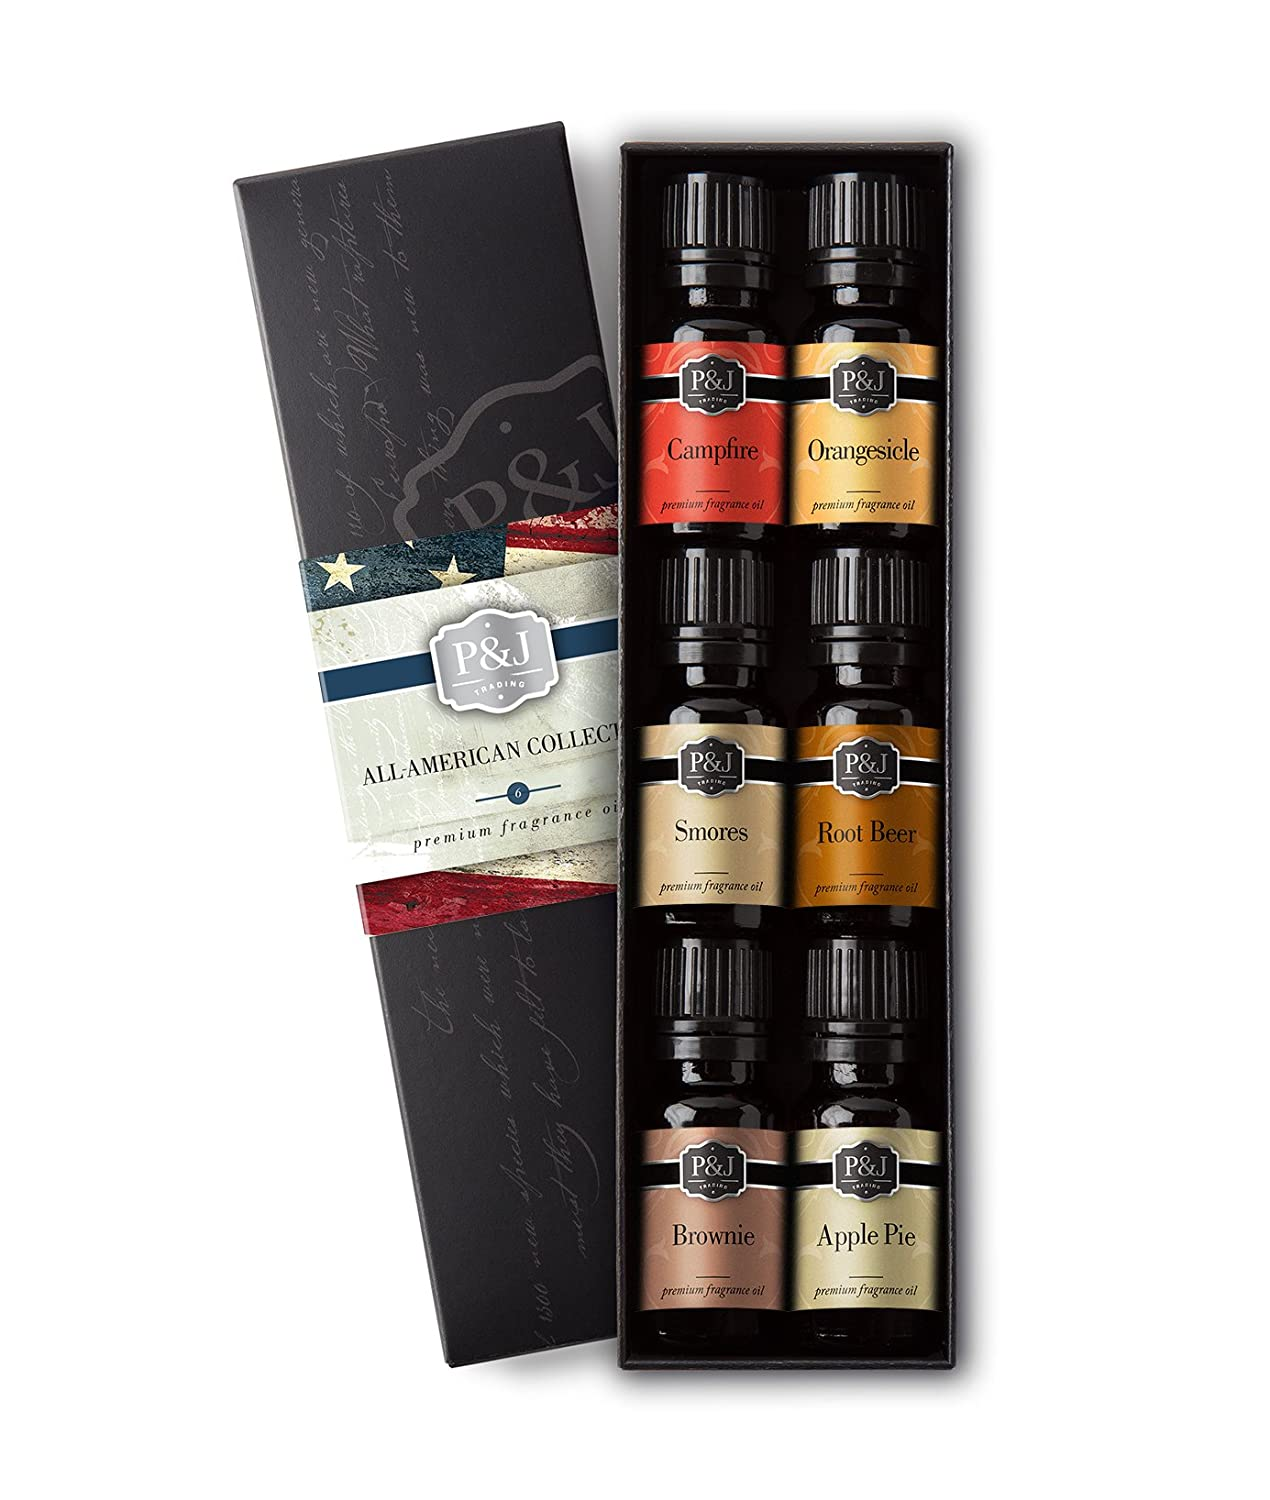 All-American Set of 6 Premium Grade Fragrance Oils - Smores, Apple Pie, Brownie, Campfire, Orangesicle, Root Beer